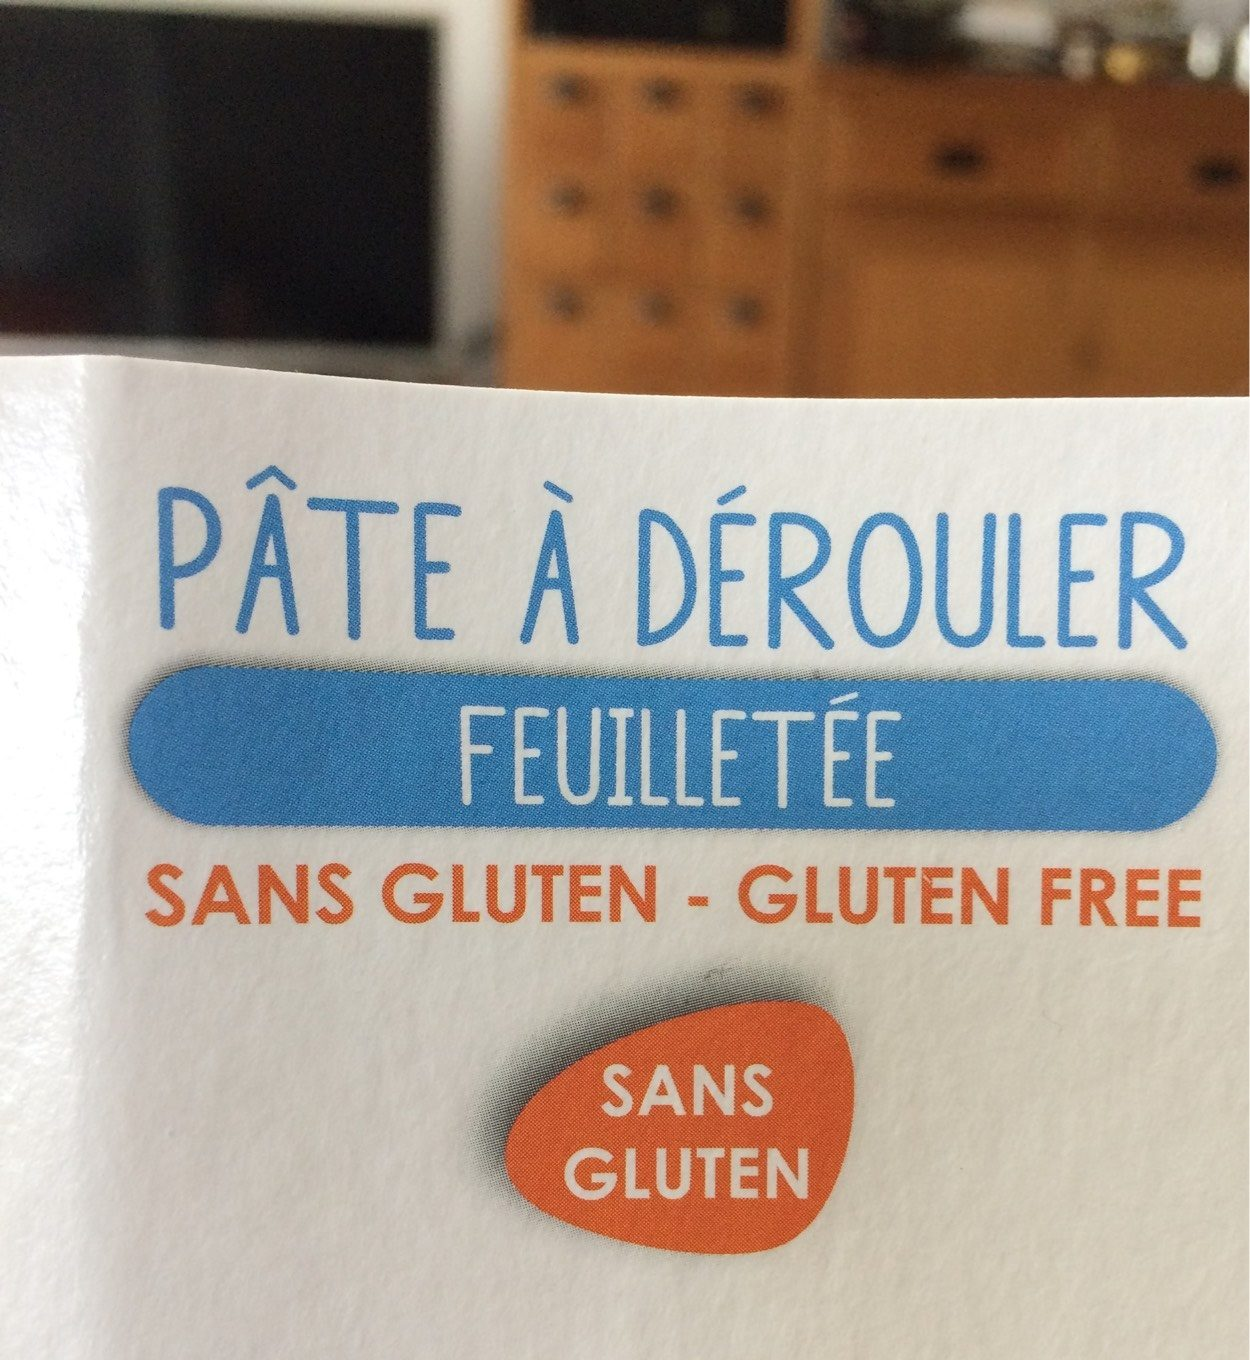 Pate feuilletee - Product - fr